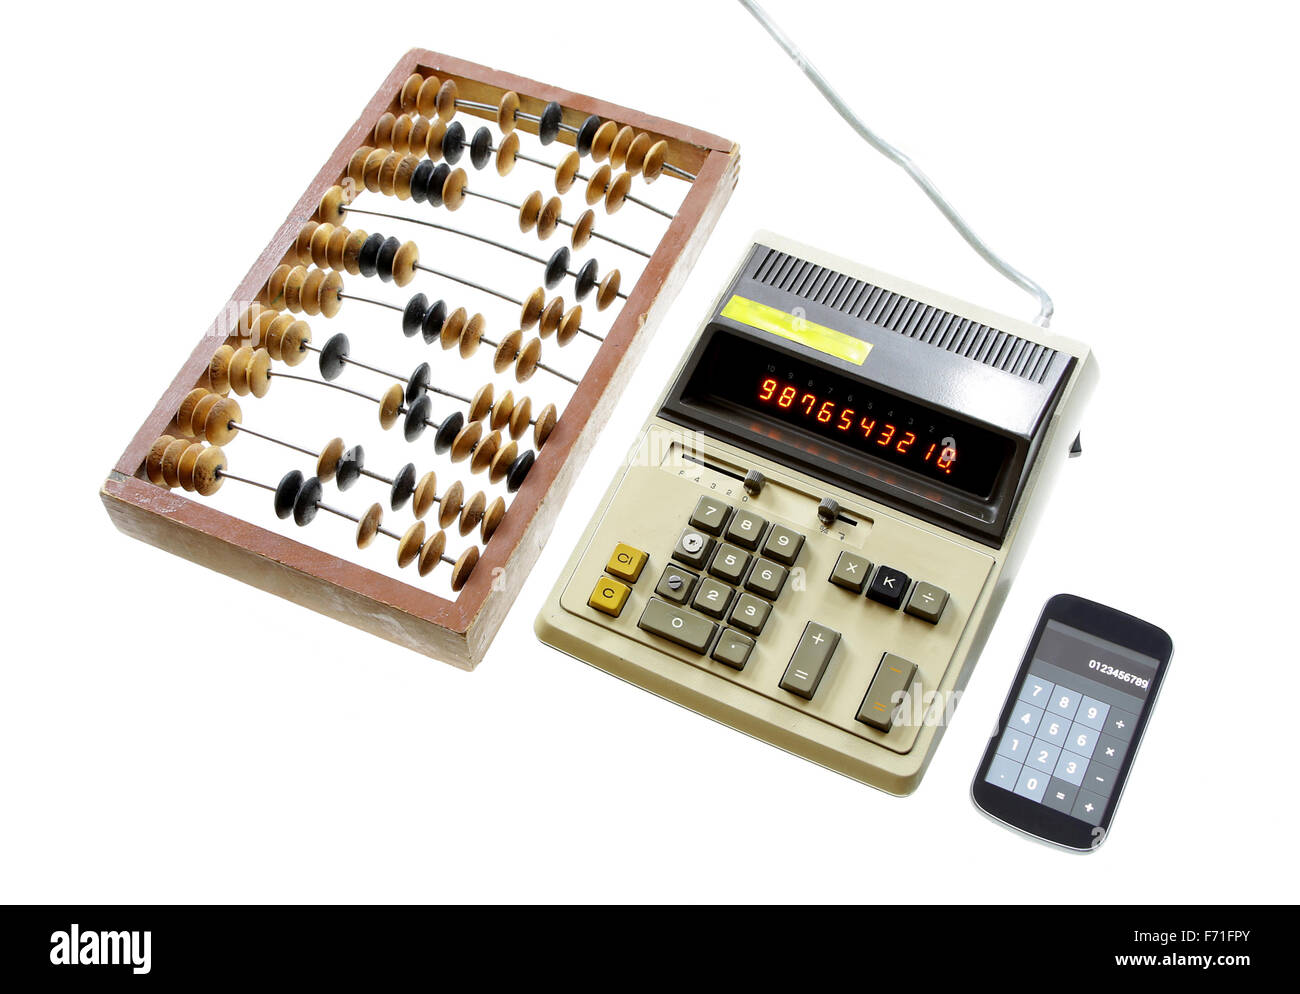 evolution of calculation abacus vintage calculator and modern gadget isolated on white background - Stock Image